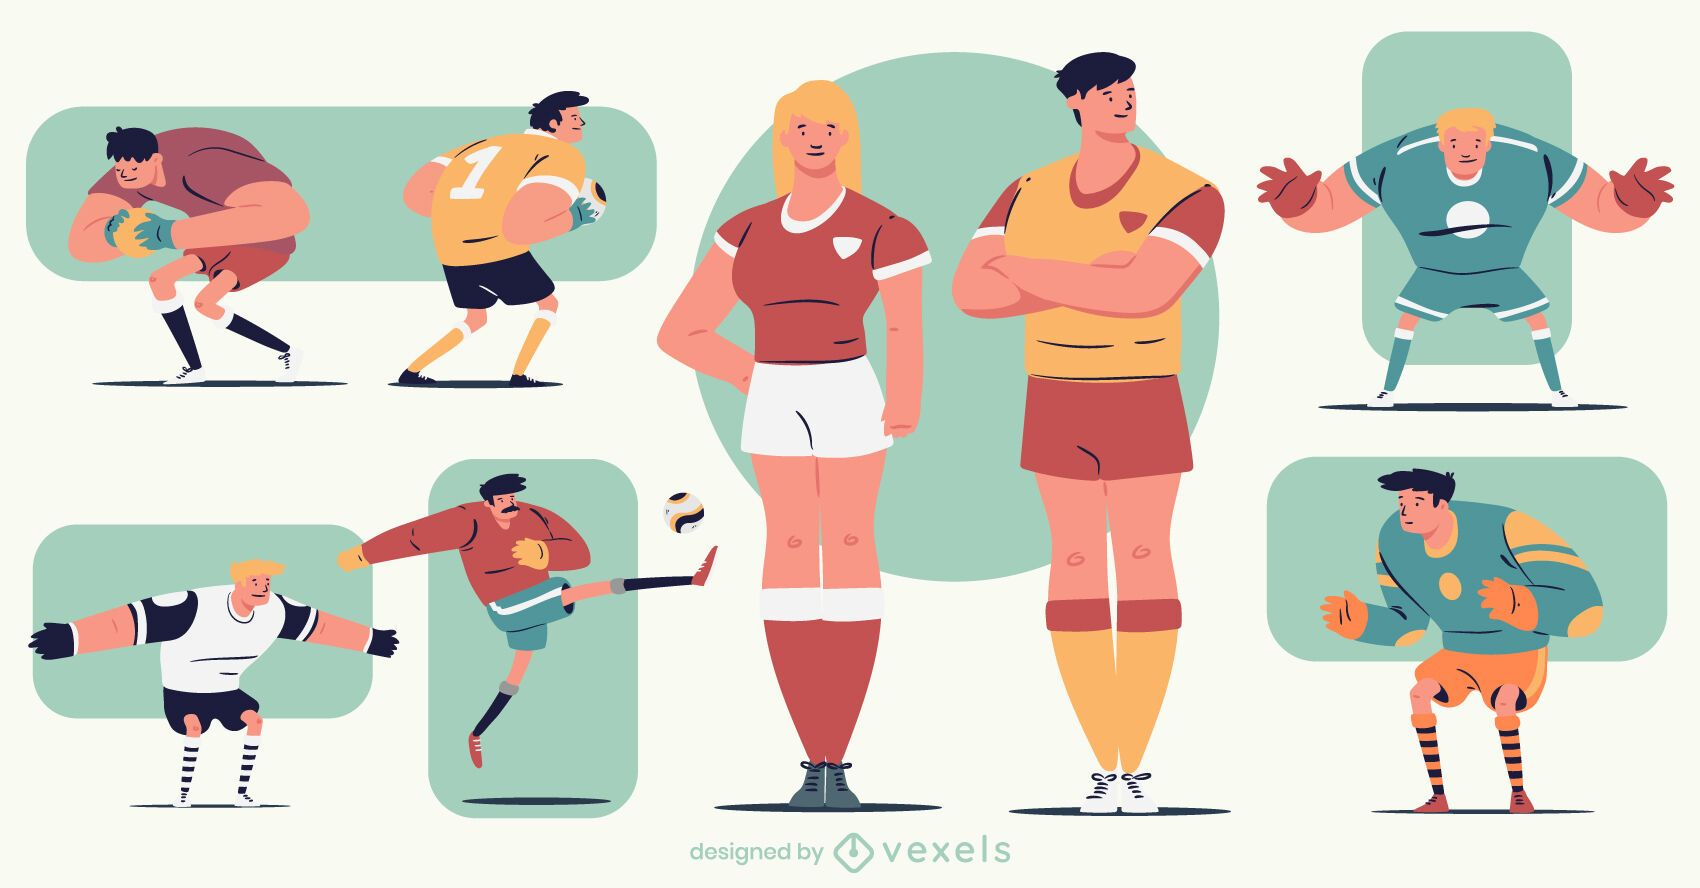 Colorful Soccer Cartoon Character Pack